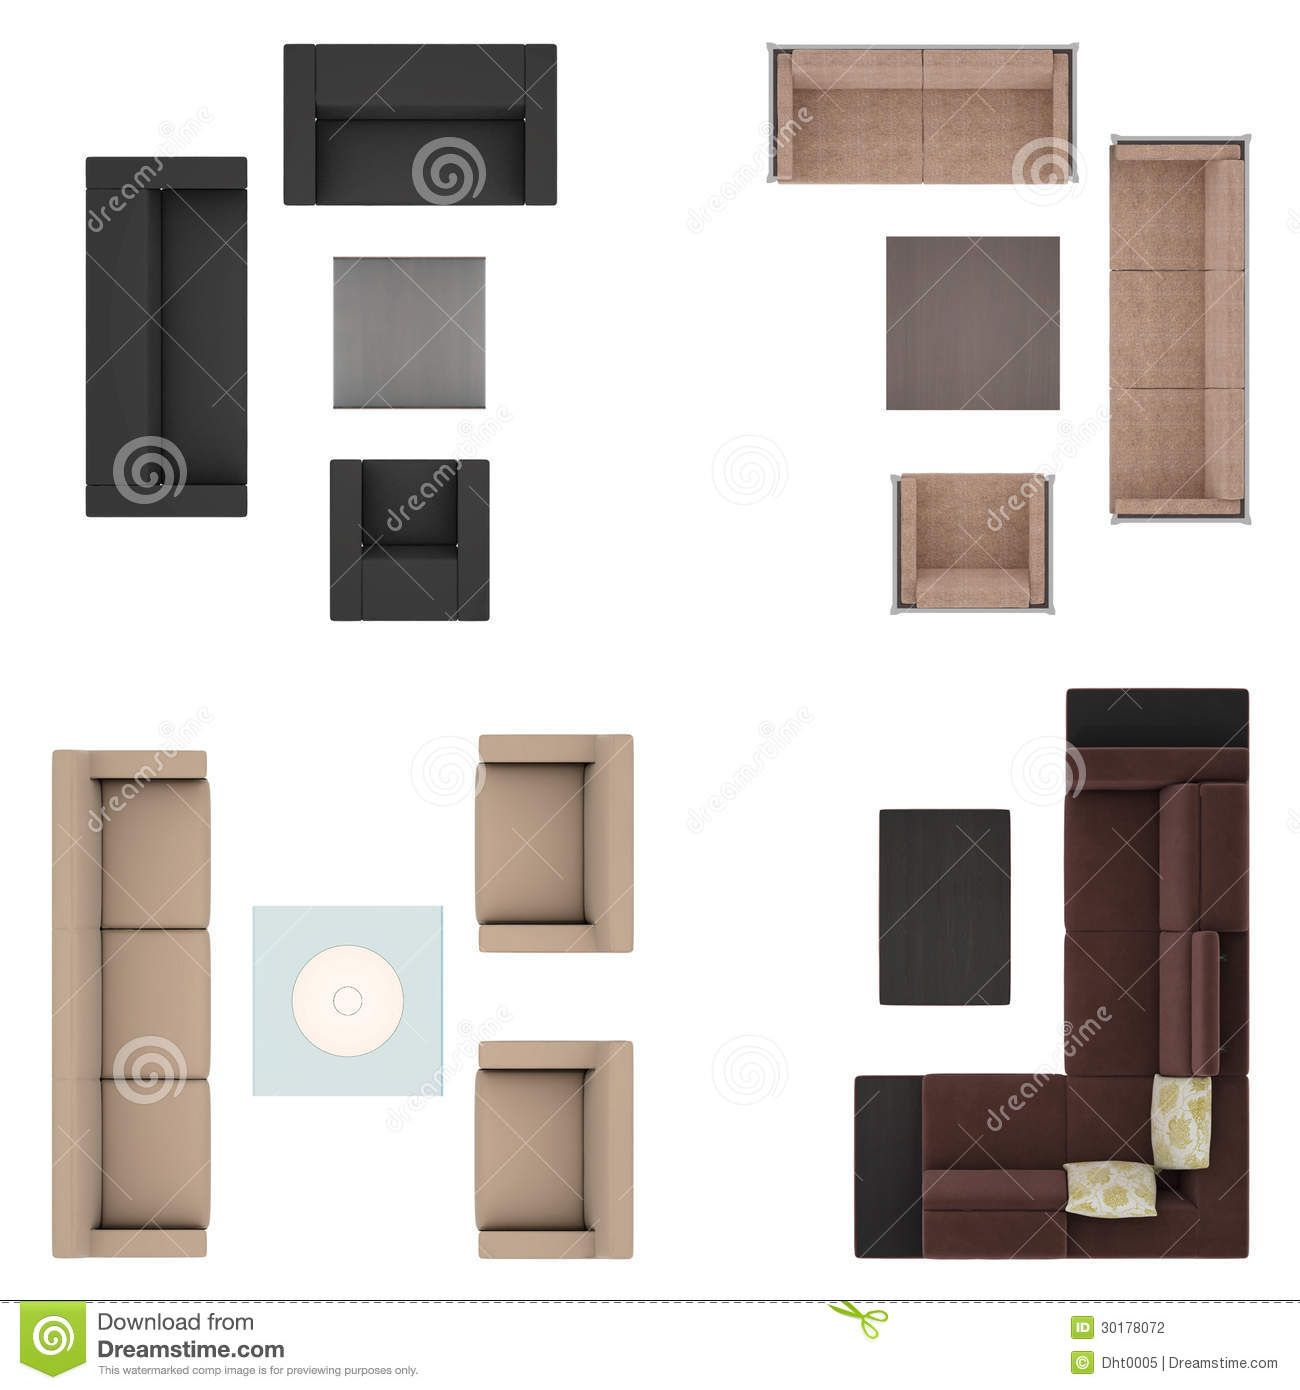 Top view chair vectors google search design for Floor plan furniture